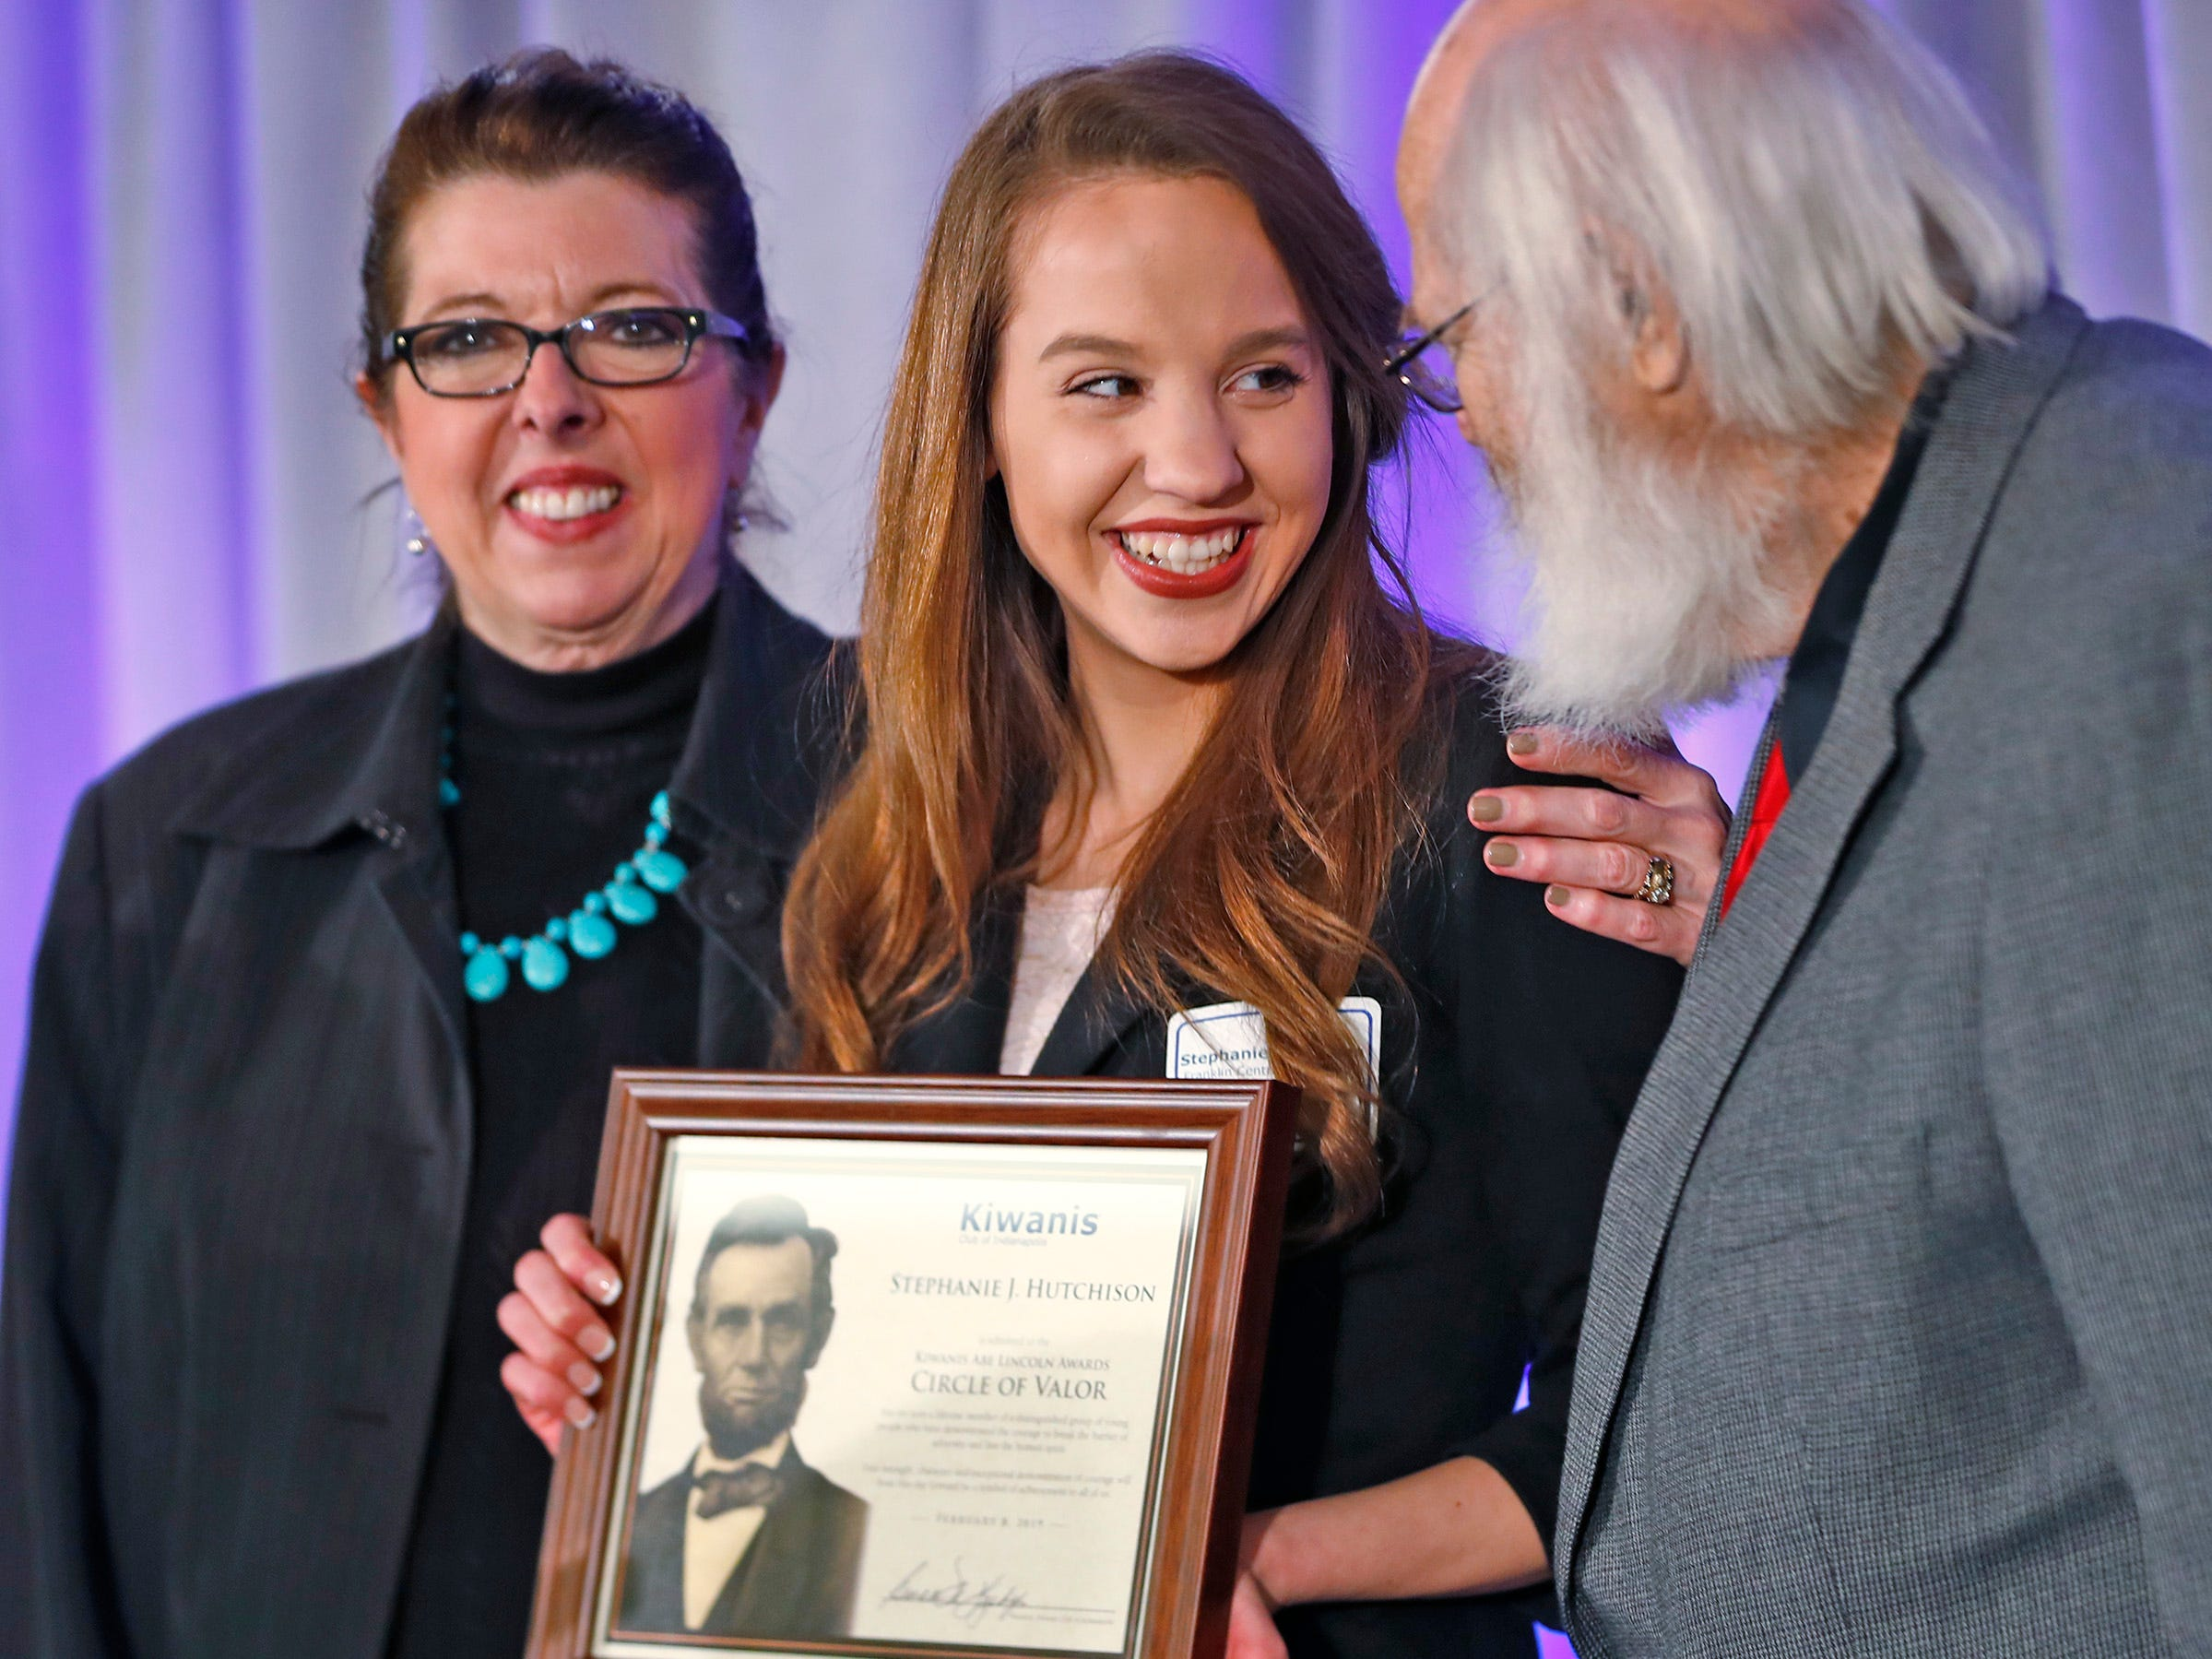 Franklin Central High School student Stephanie Hutchison, center, is honored with a Circle of Valor award at the 44th Annual Abe Lincoln Awards Program, Friday, Feb. 8, 2019. The Kiwanis Club of Indianapolis program was held at Ivy Tech Community College.  20 high school student were honored at the annual event which celebrates overcoming adversity in life to succeed.